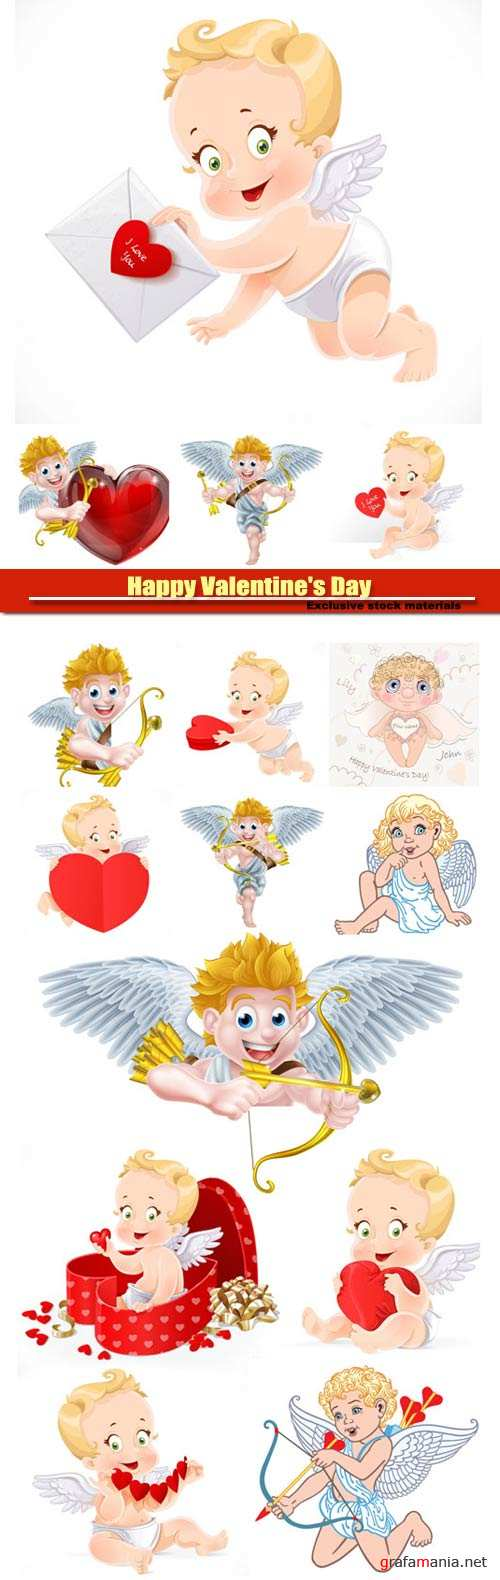 Happy Valentine's Day vector, hearts, romance, love, angels #7